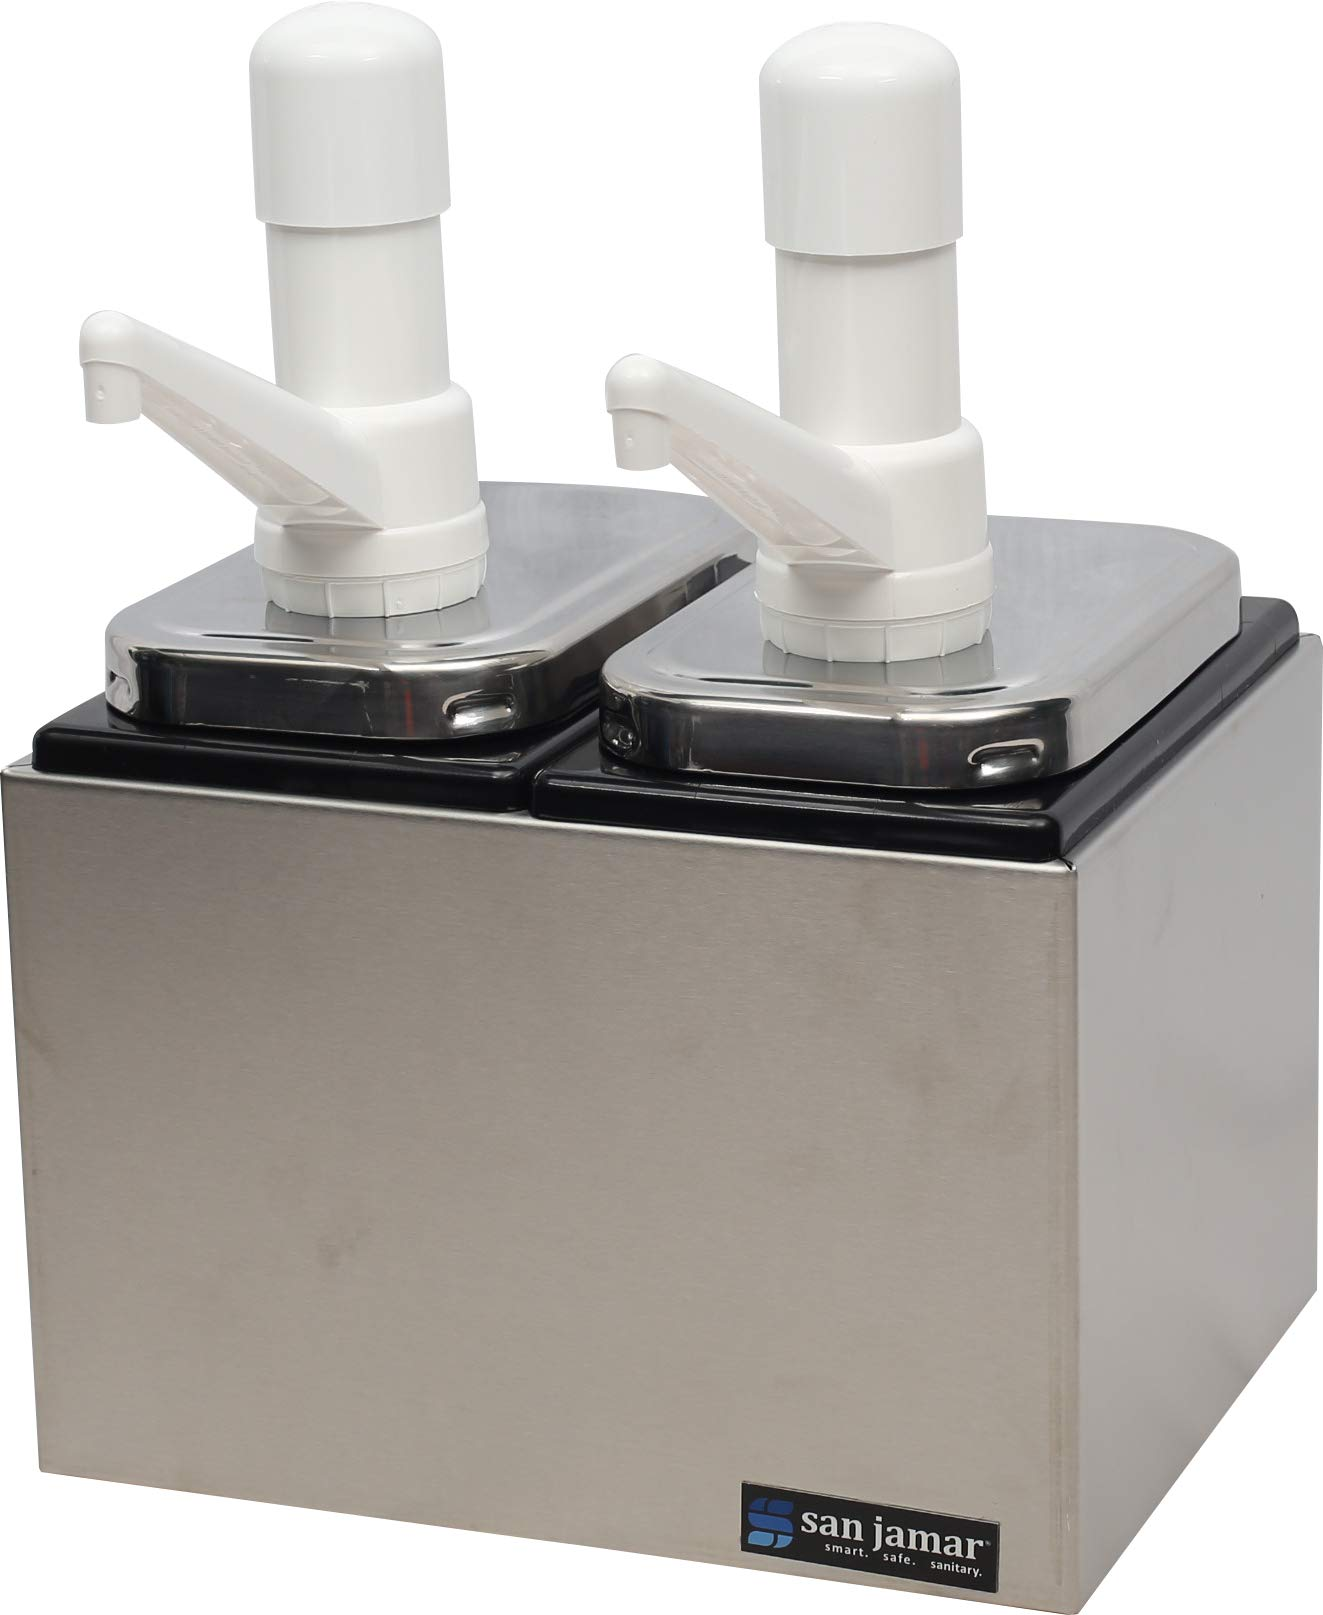 San Jamar P9712 Stainless Steel Condiment Pump Service Center with 2 Wells Black Jars, 10-1/8'' Length x 7-7/8'' Width x 12-1/2'' Height by San Jamar